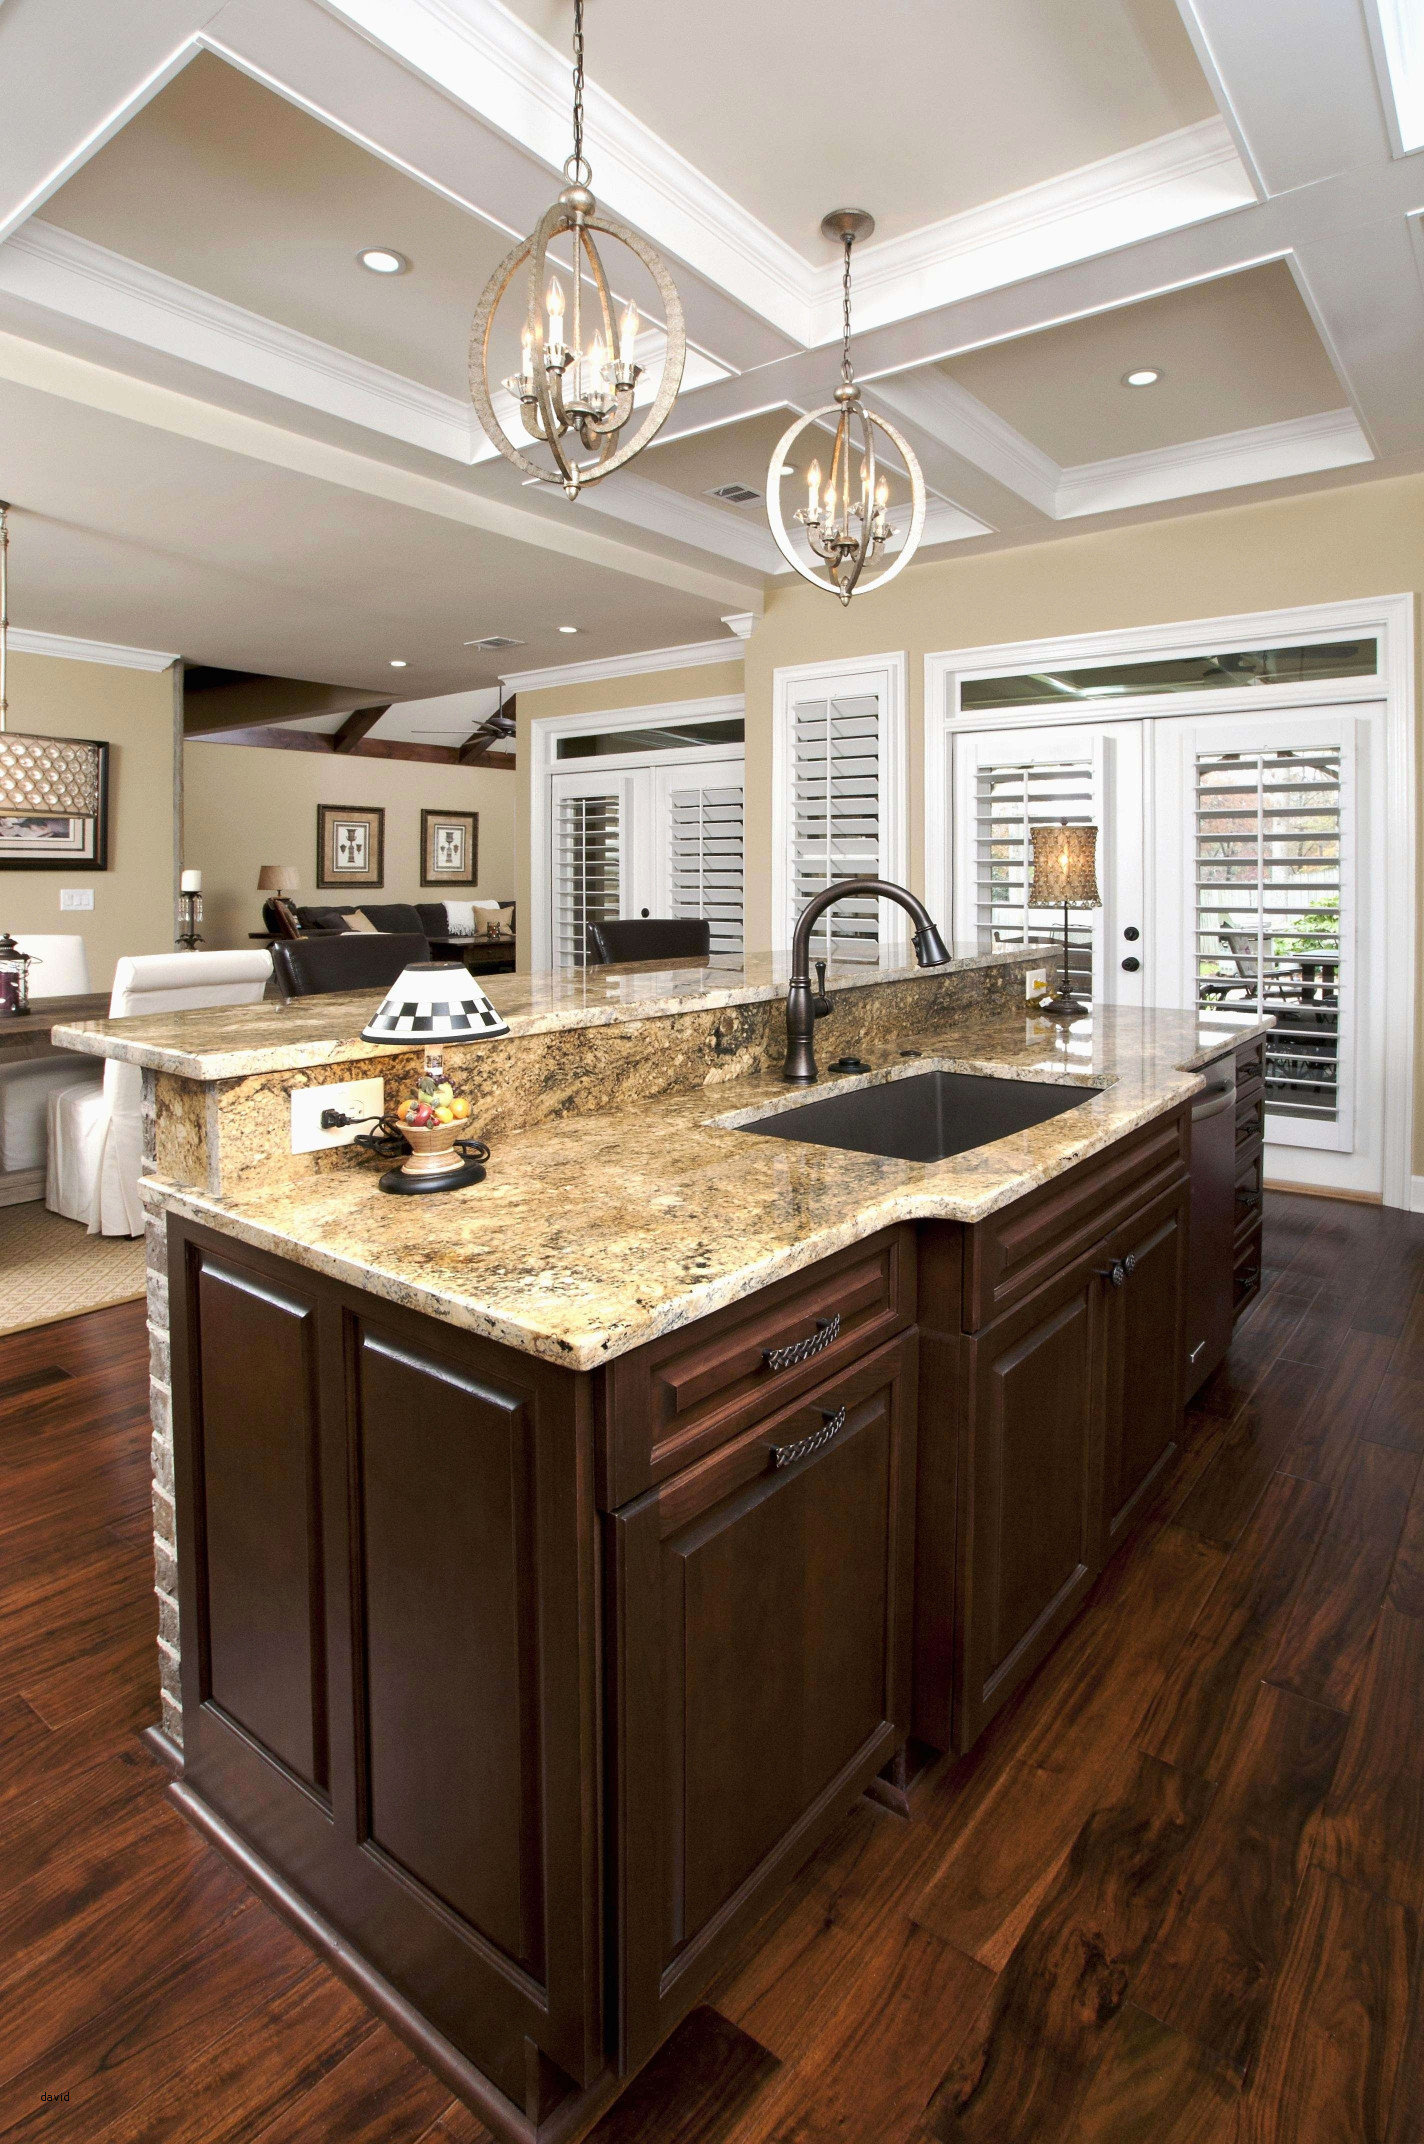 hardwood floor alternatives of kitchen decor items excellent wood floor in kitchen inspirational throughout kitchen decor items excellent wood floor in kitchen inspirational floored kitchen decor items new